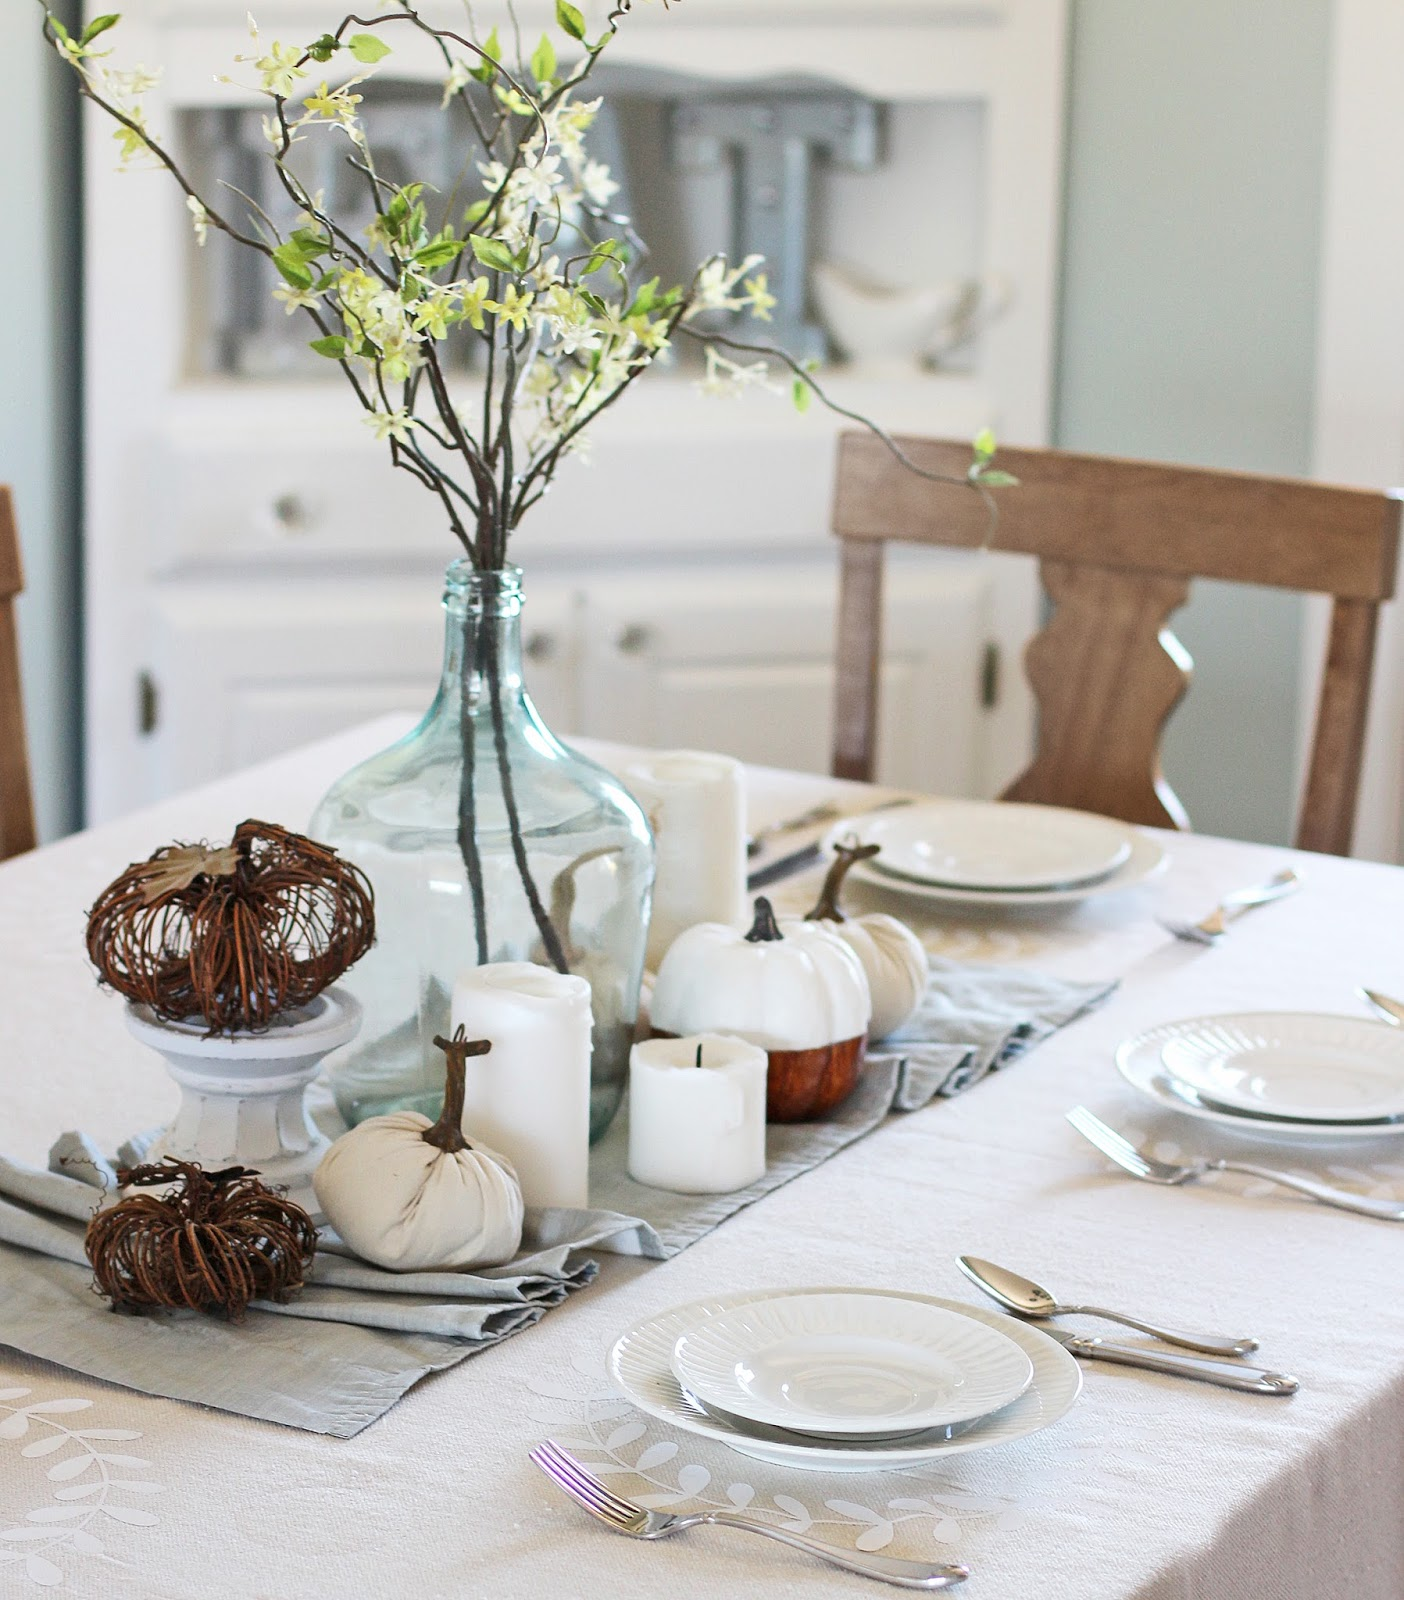 Dress your table for Thanksgiving with this pretty DIY tablecloth